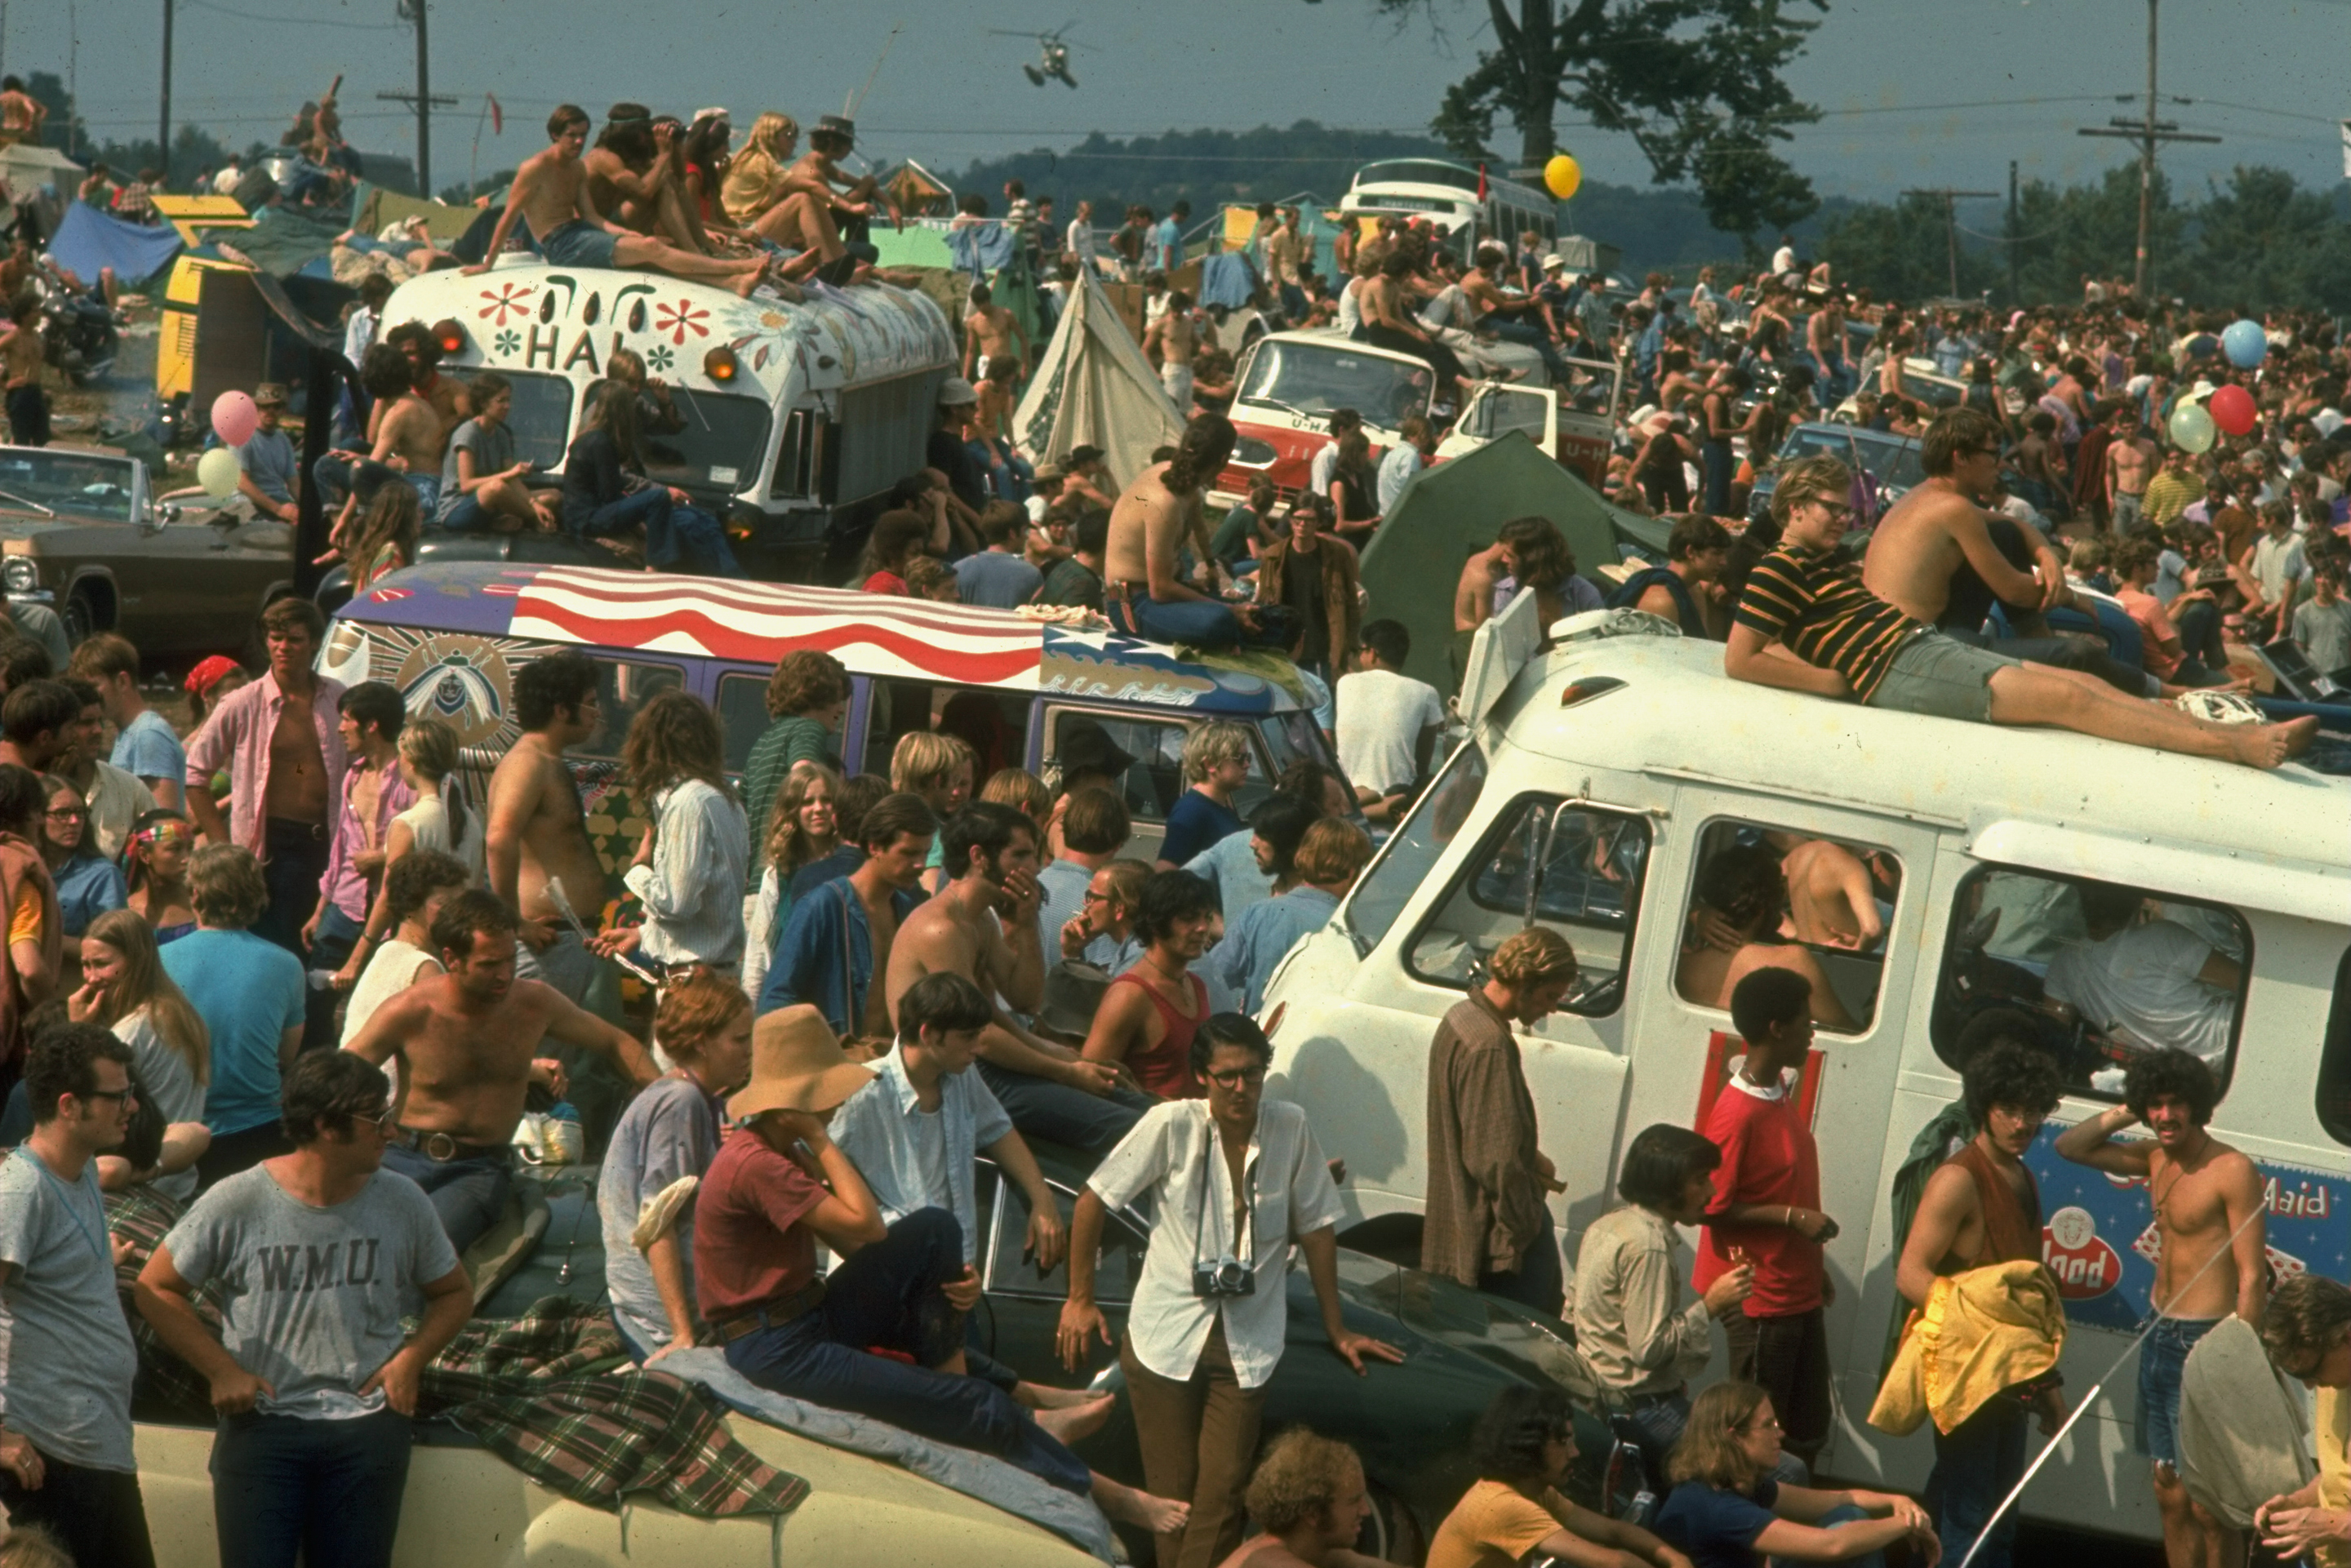 Woodstock 1969-Vans Busses